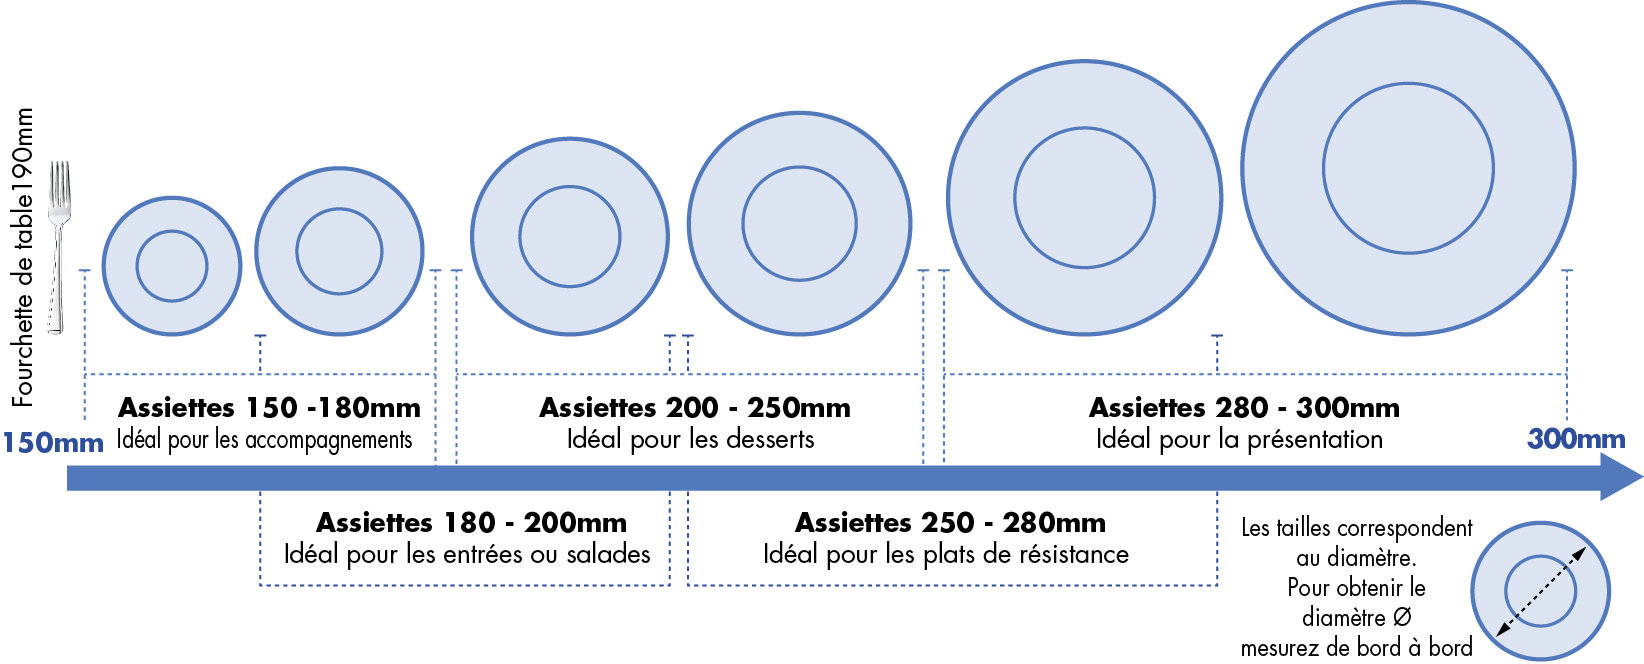 fr_plate_size_guide